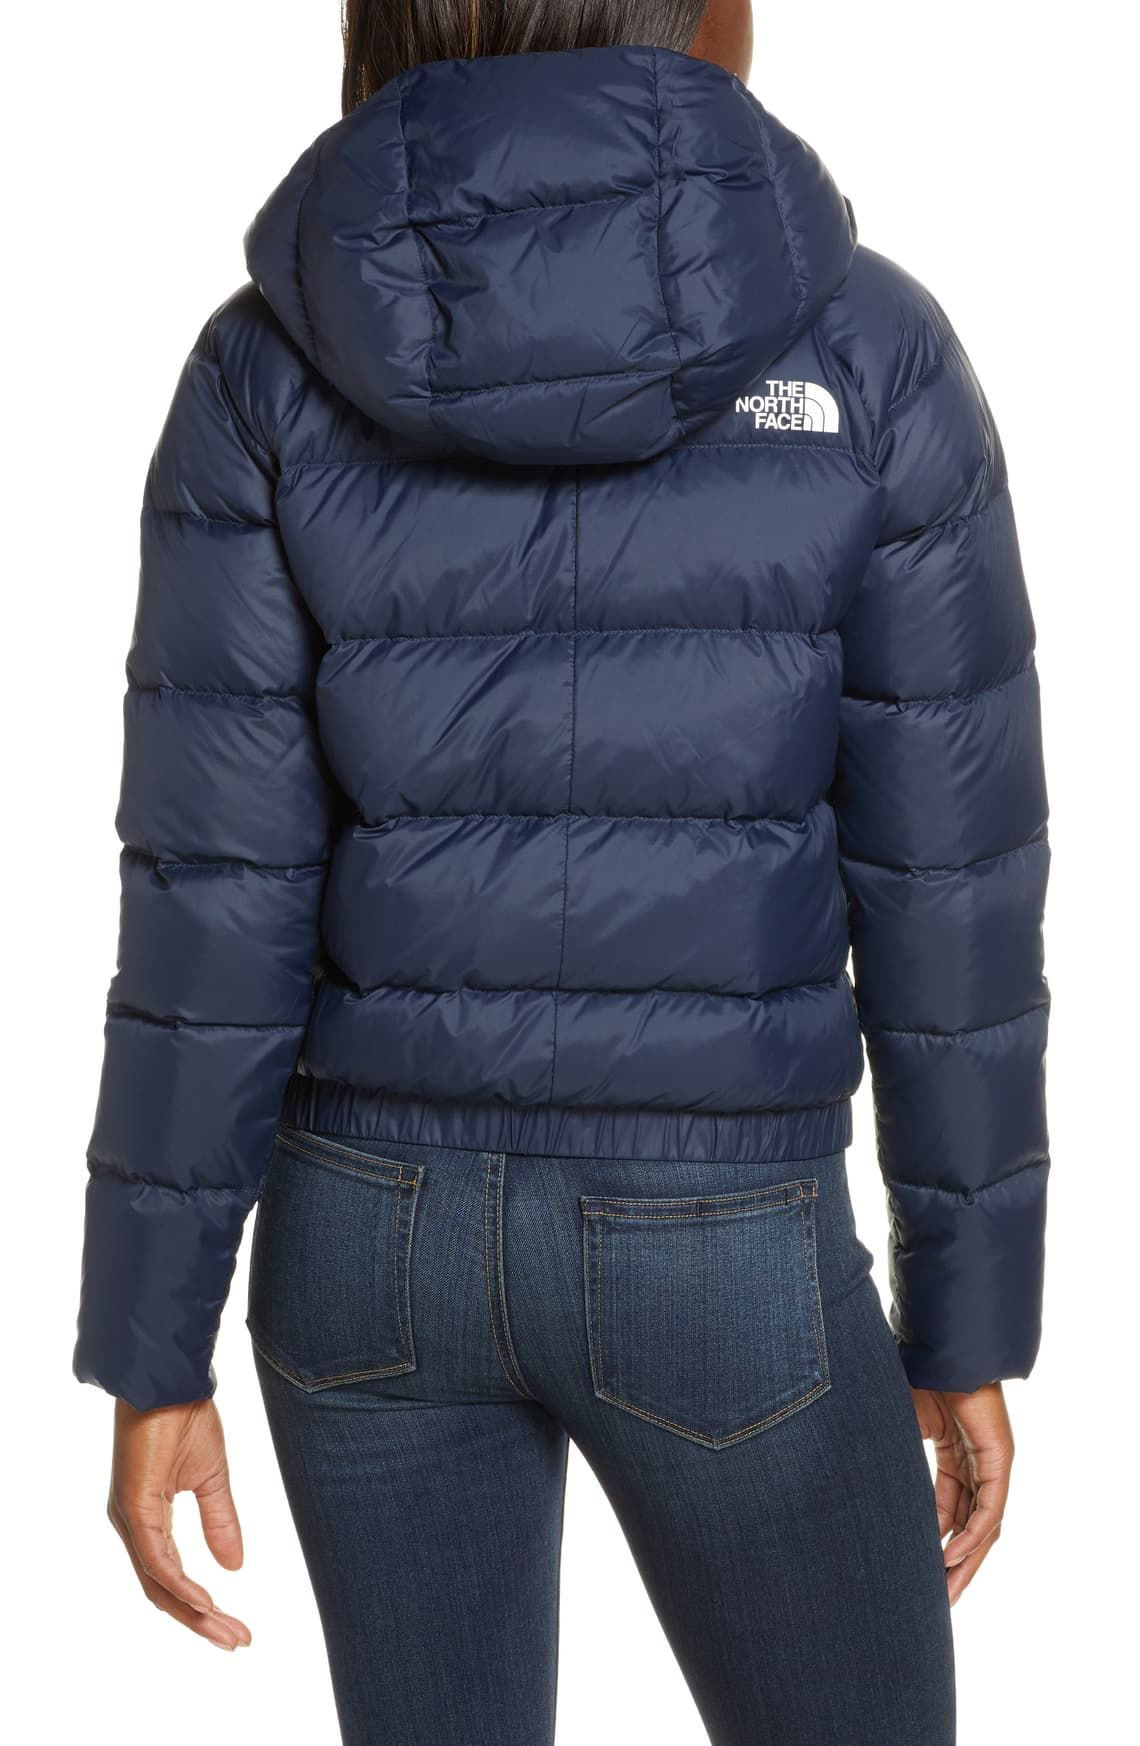 The North Face Hyalite 550 Fill Power Down Jacket Nordstrom Down Jacket Jackets The North Face [ 1746 x 1140 Pixel ]